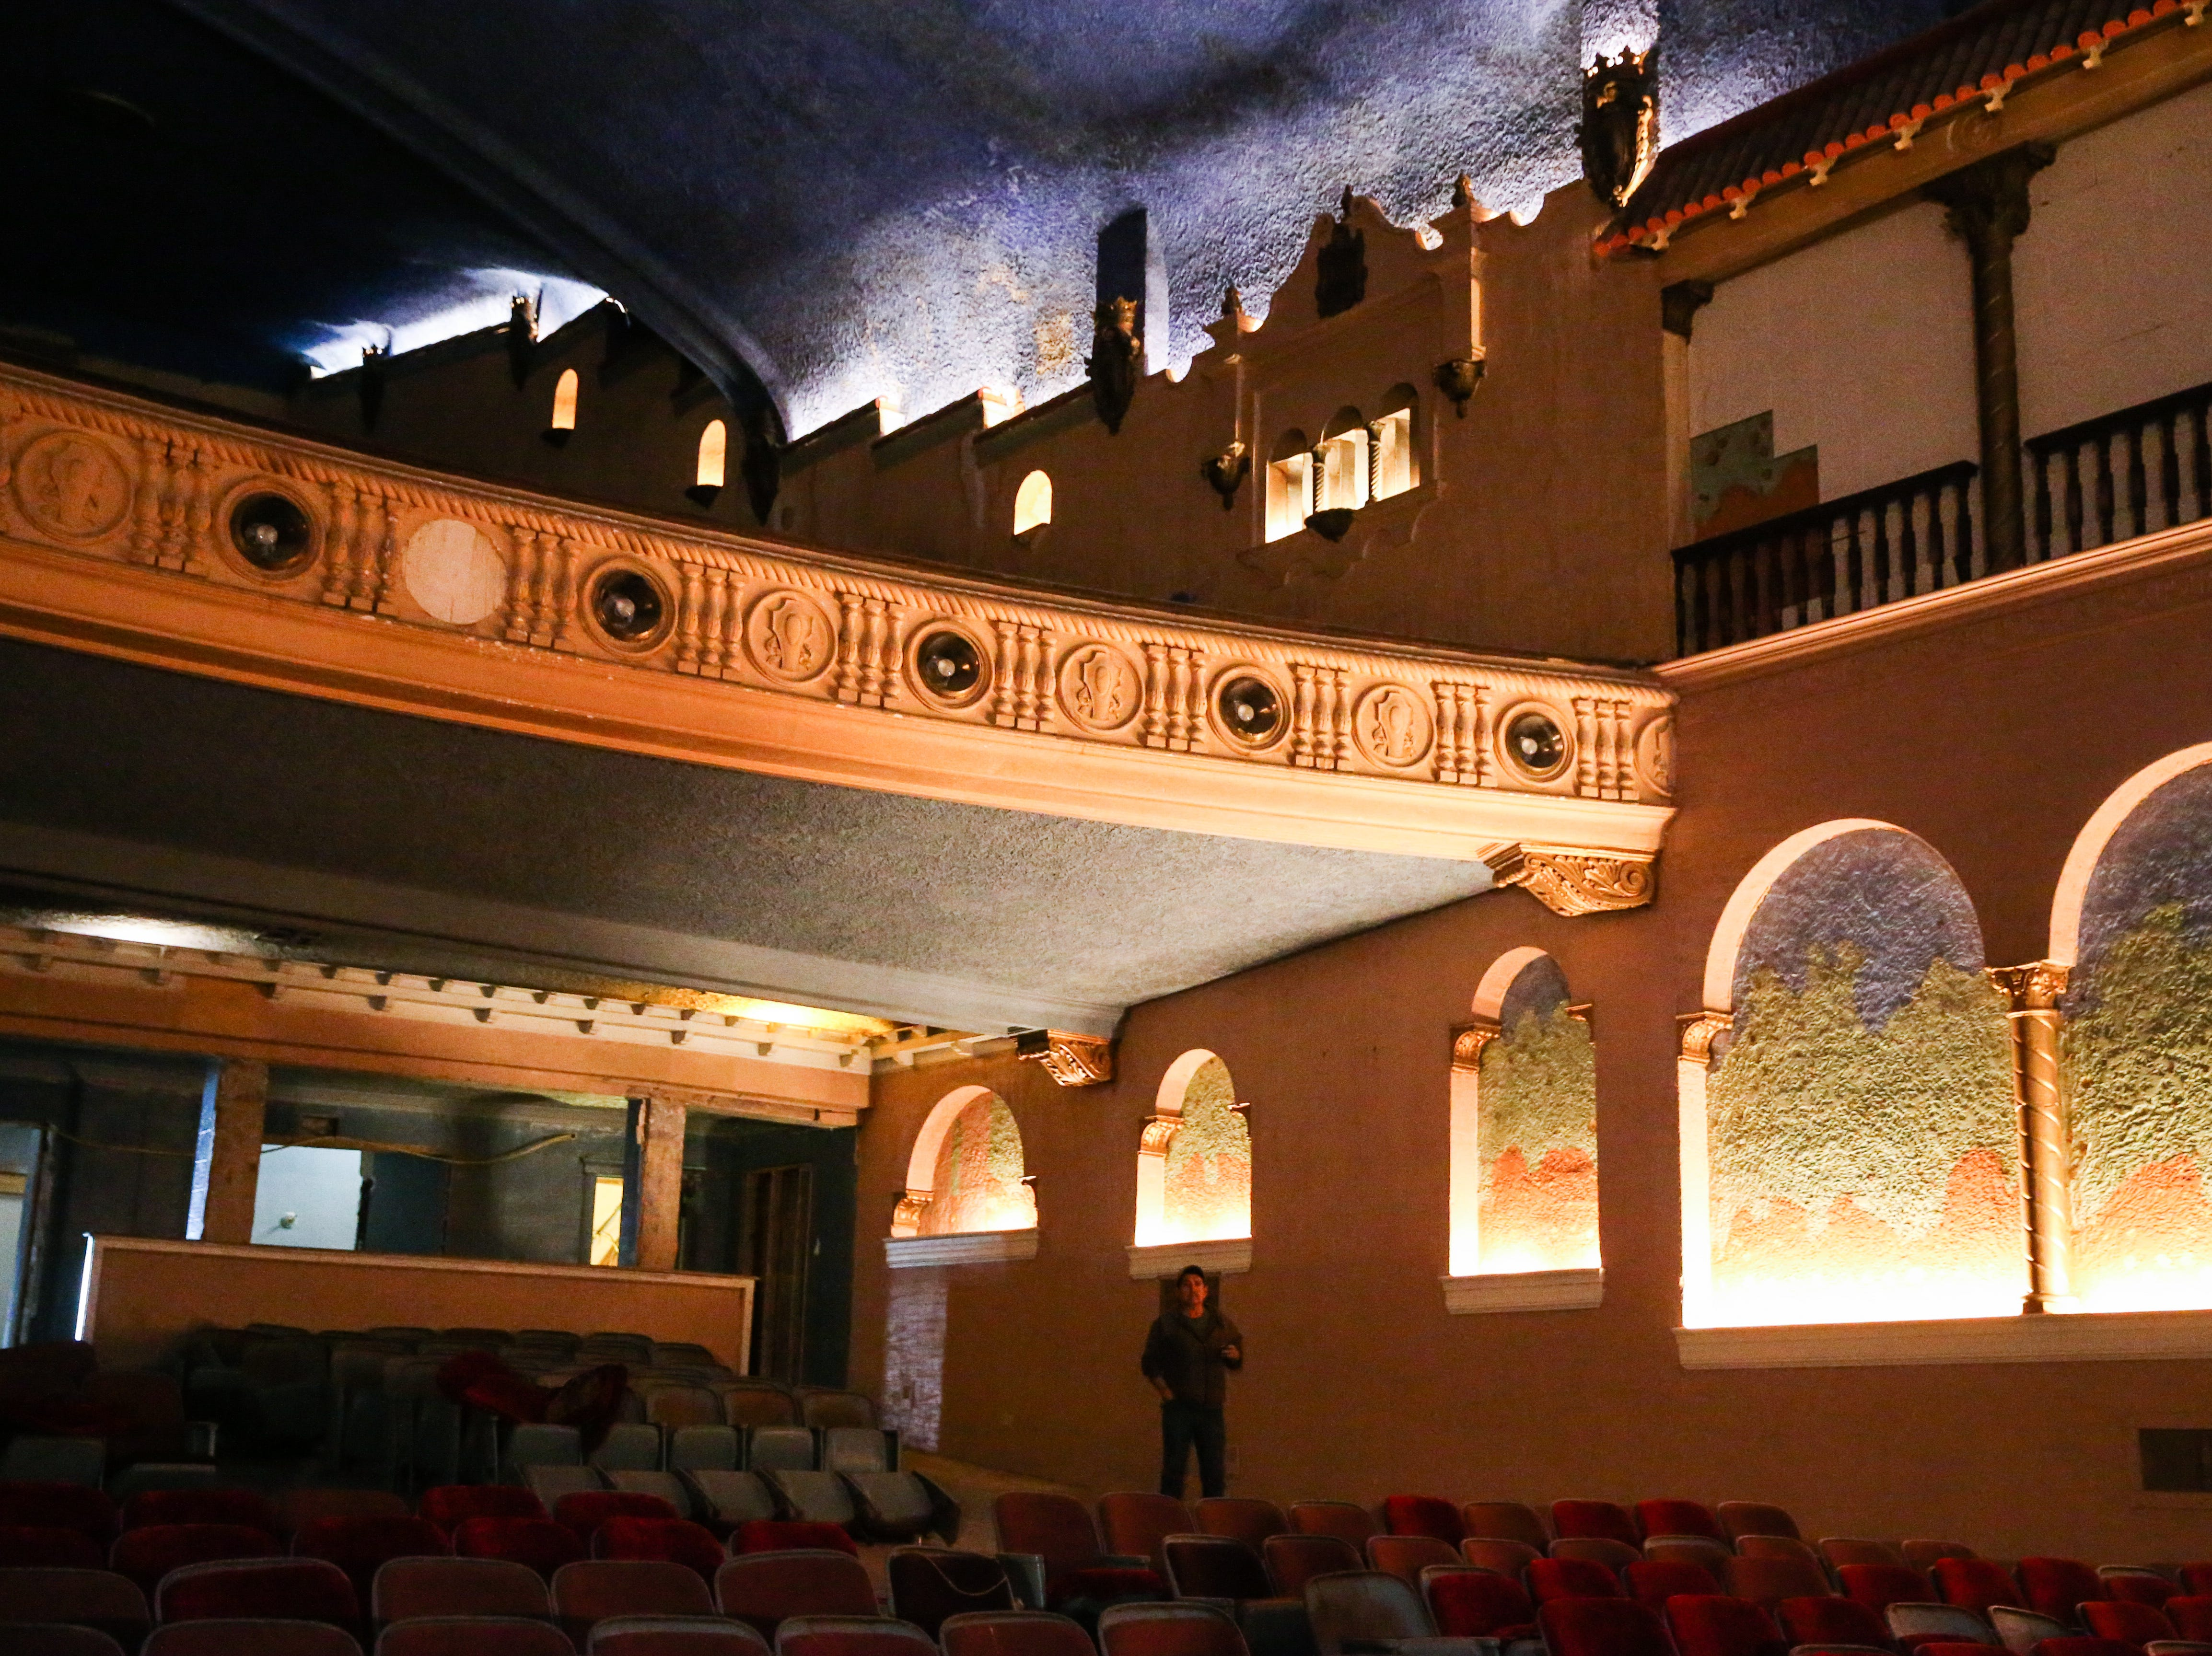 The auditorium inside the former Texas Theatre pulled inspiration from Spain architecture. Lee Pfluger purchased the building in 1998 and it has been unused since 2015.